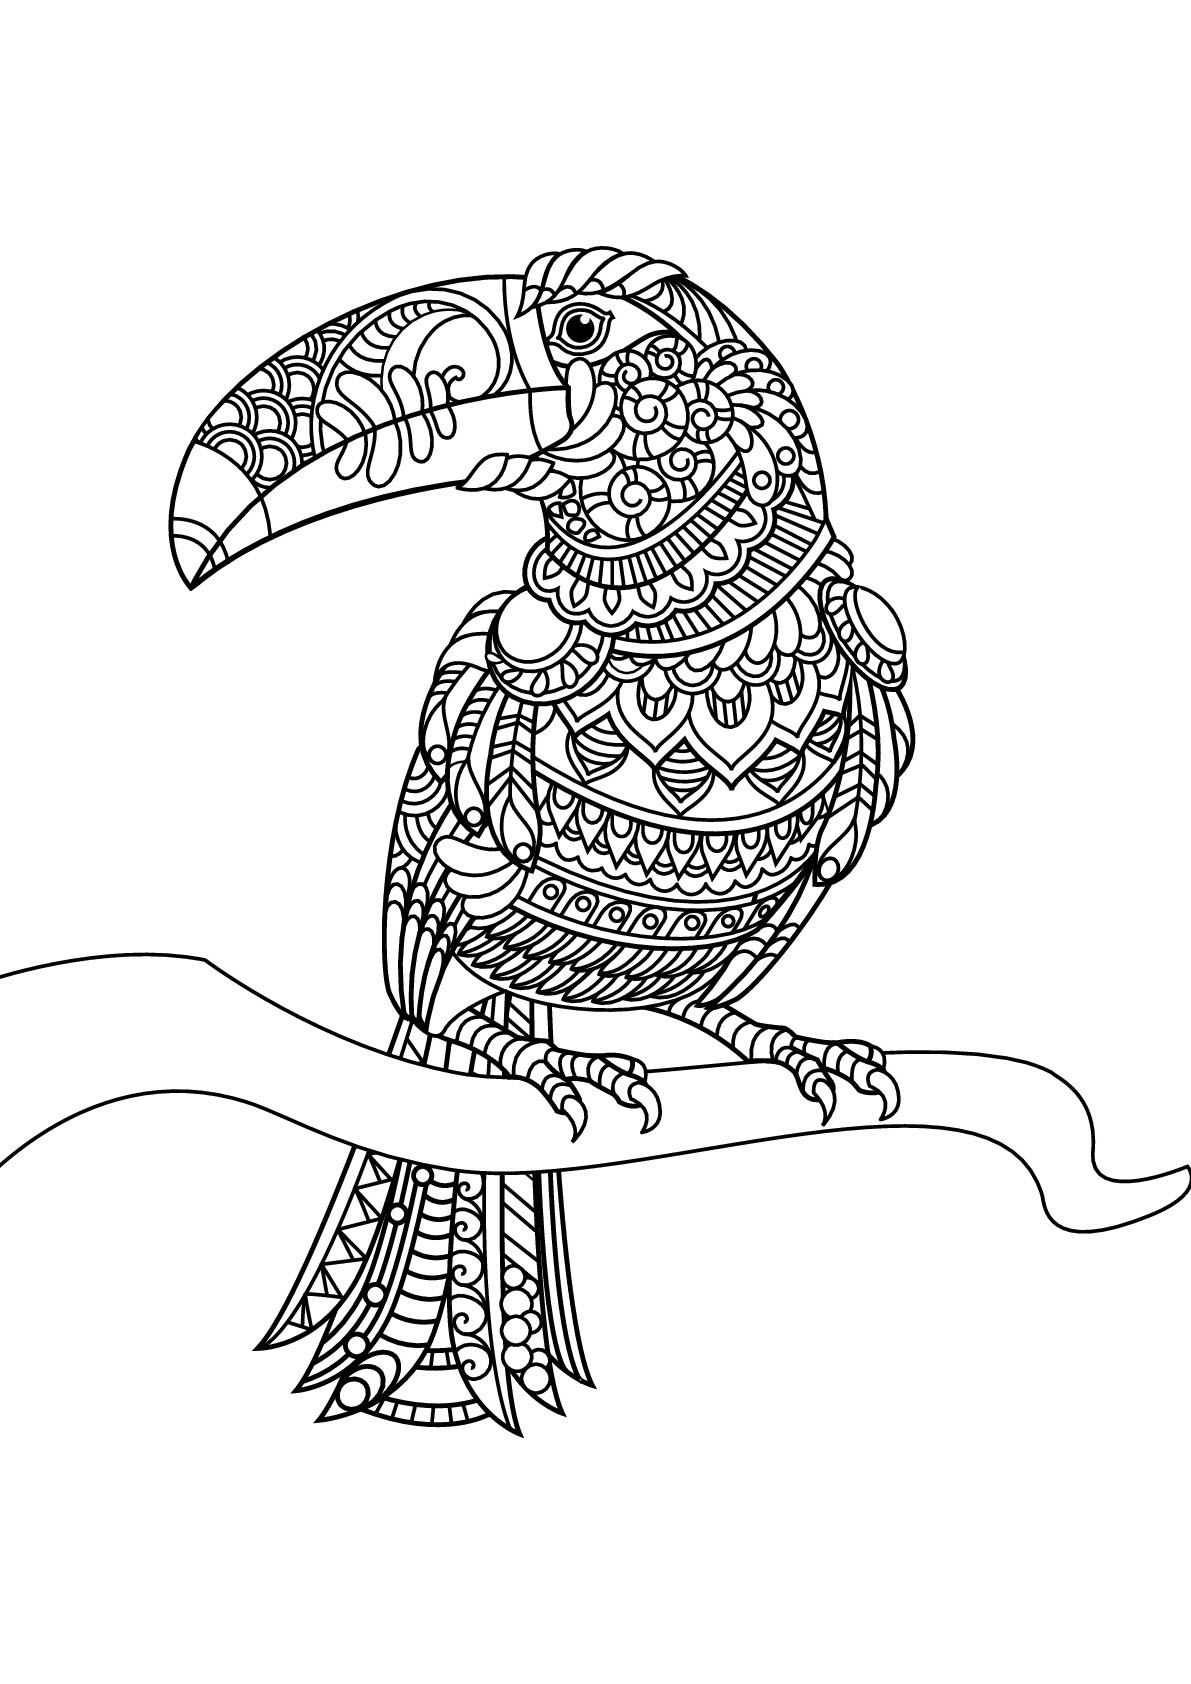 bird coloring pages for adults birds free to color for children birds kids coloring pages coloring for bird adults pages